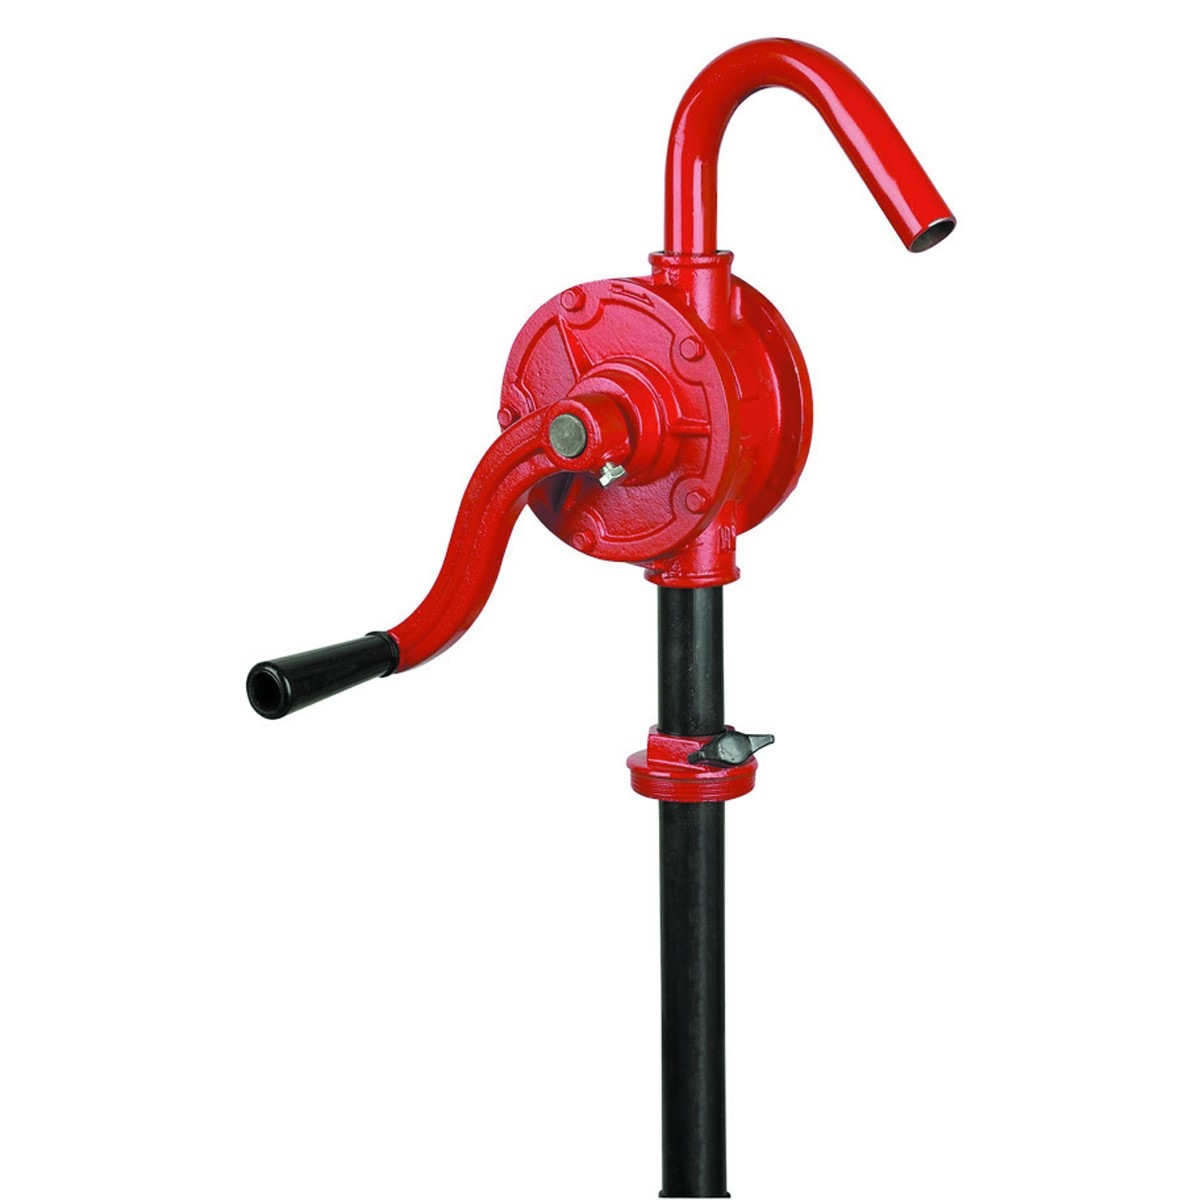 Vk Vl V8 5 in addition 252372551020 in addition Rovergasturbine besides Husqvarna 125b 28cc 2stroke 170mph Gaspowered Handheld Gas Blower Parts C 114486 114946 199143 furthermore mon Fuel Pump Problems And Troubleshooting. on hand crank fuel pump